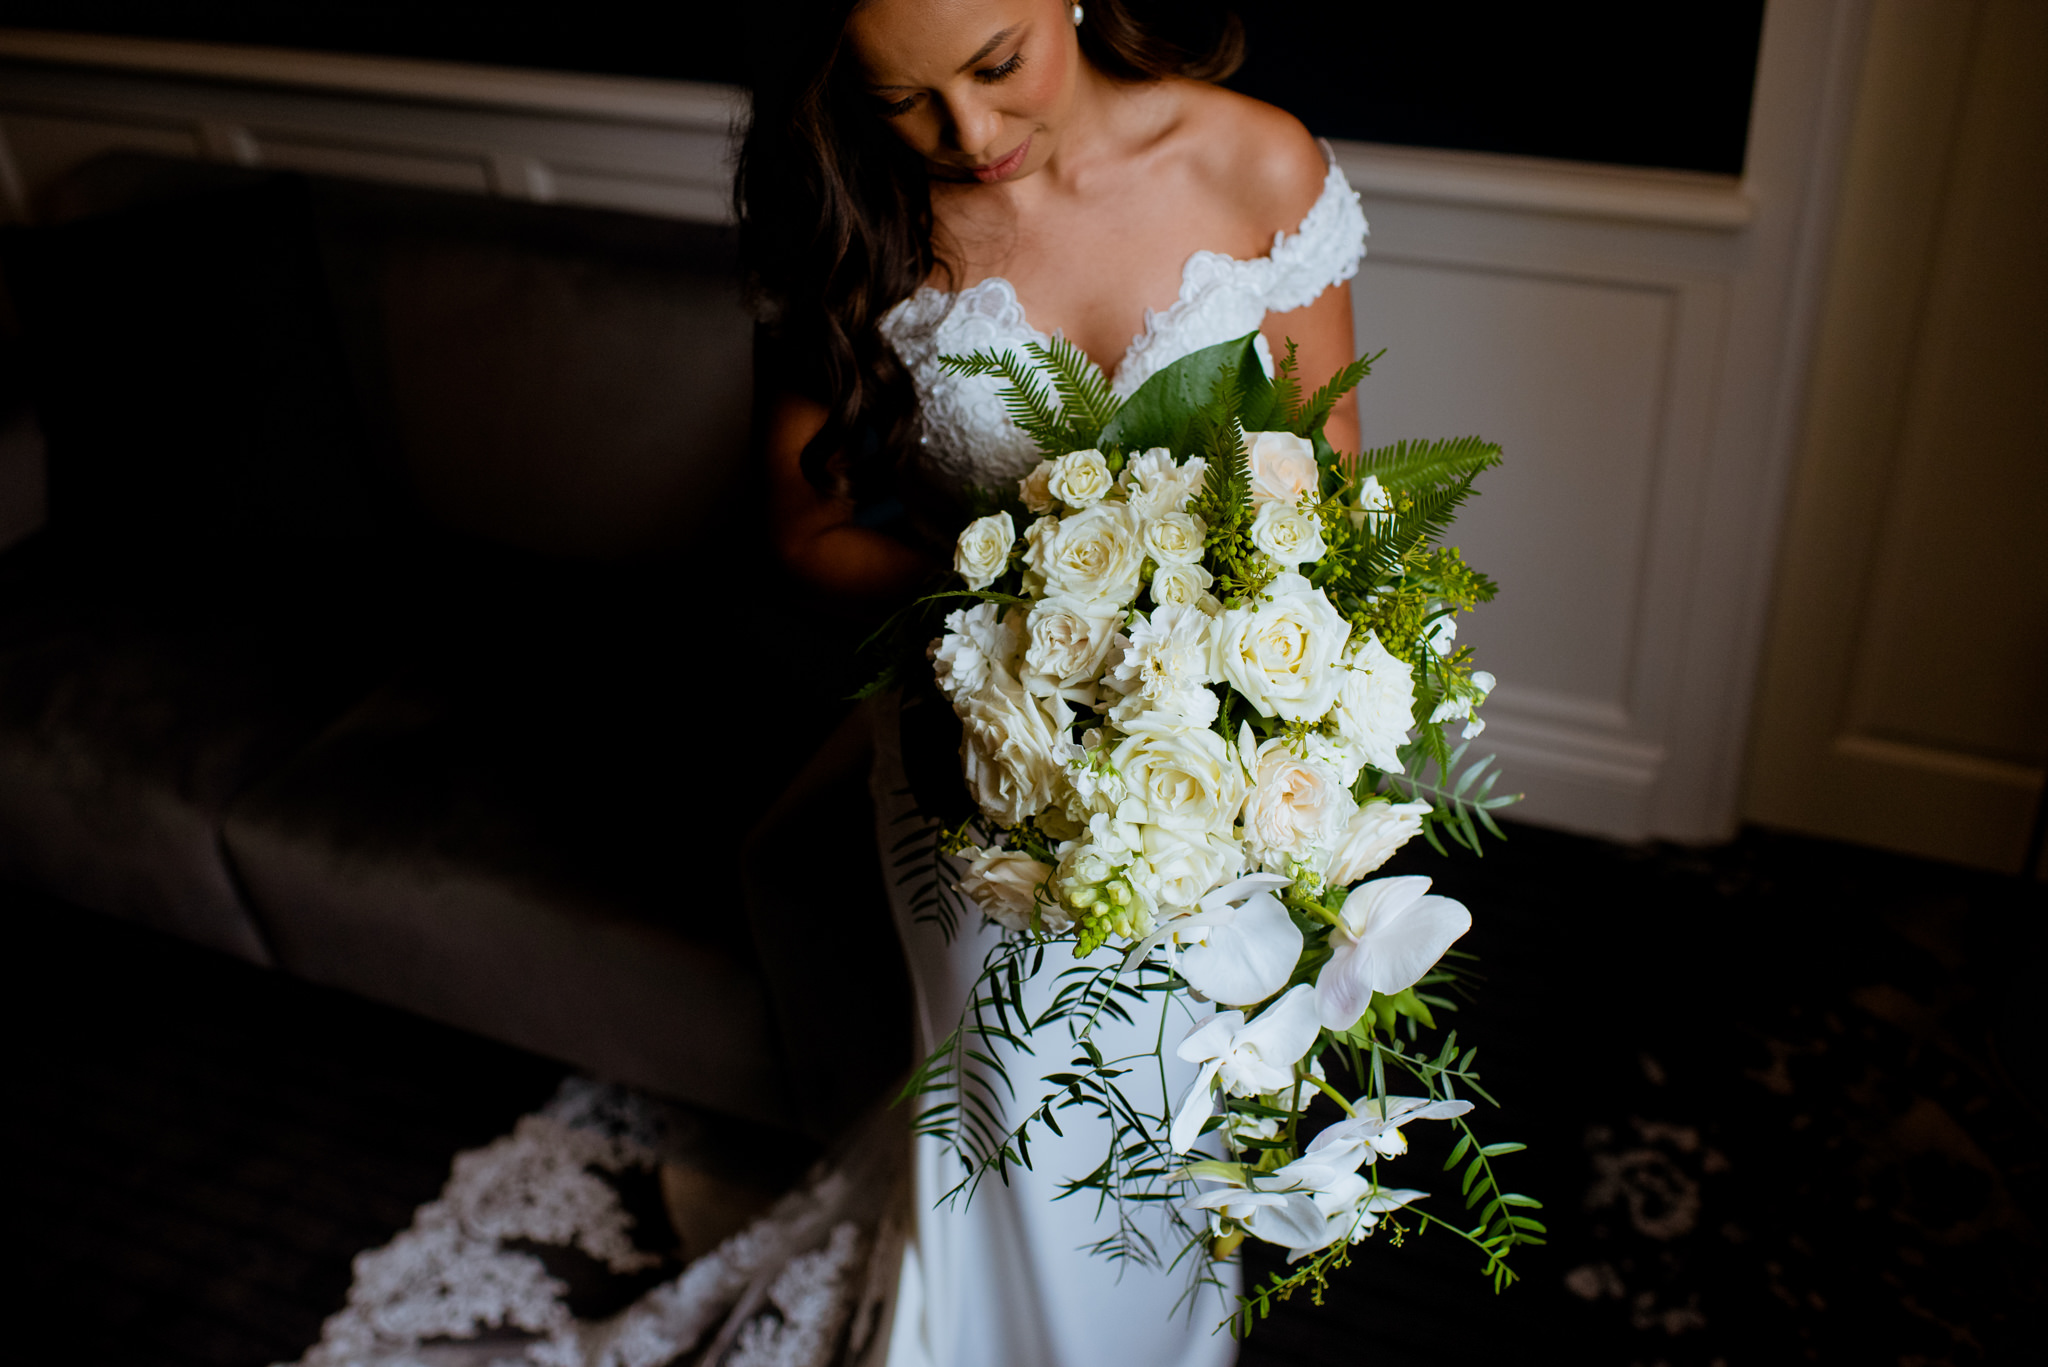 Bride stands and admires her large white wedding bouquet